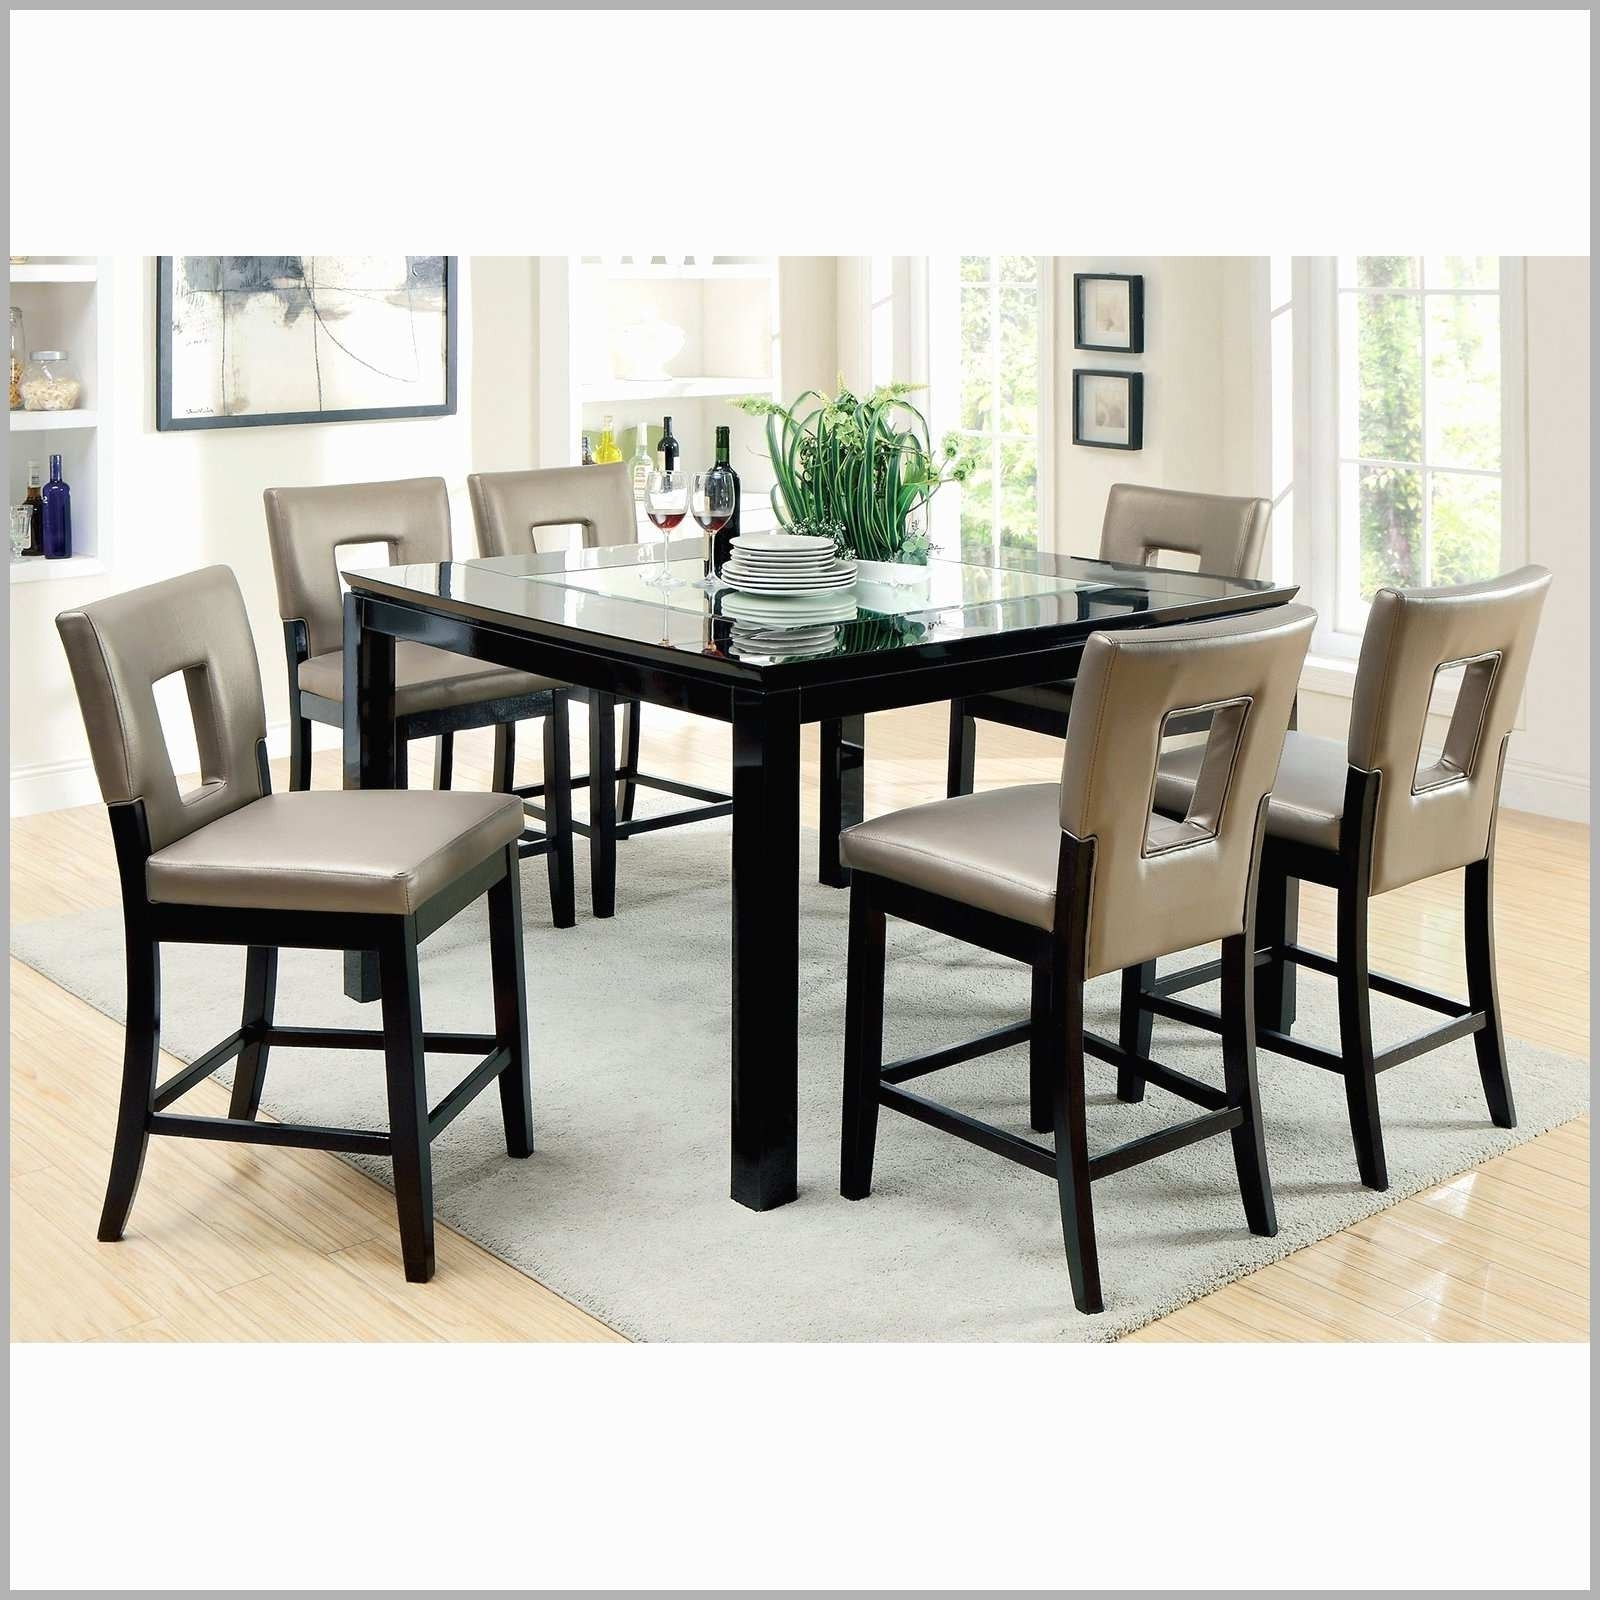 Extending Dining Table Sets Regarding Most Up To Date White High Gloss Extending Dining Table Luxury 8 Seater Dining Table (View 8 of 25)